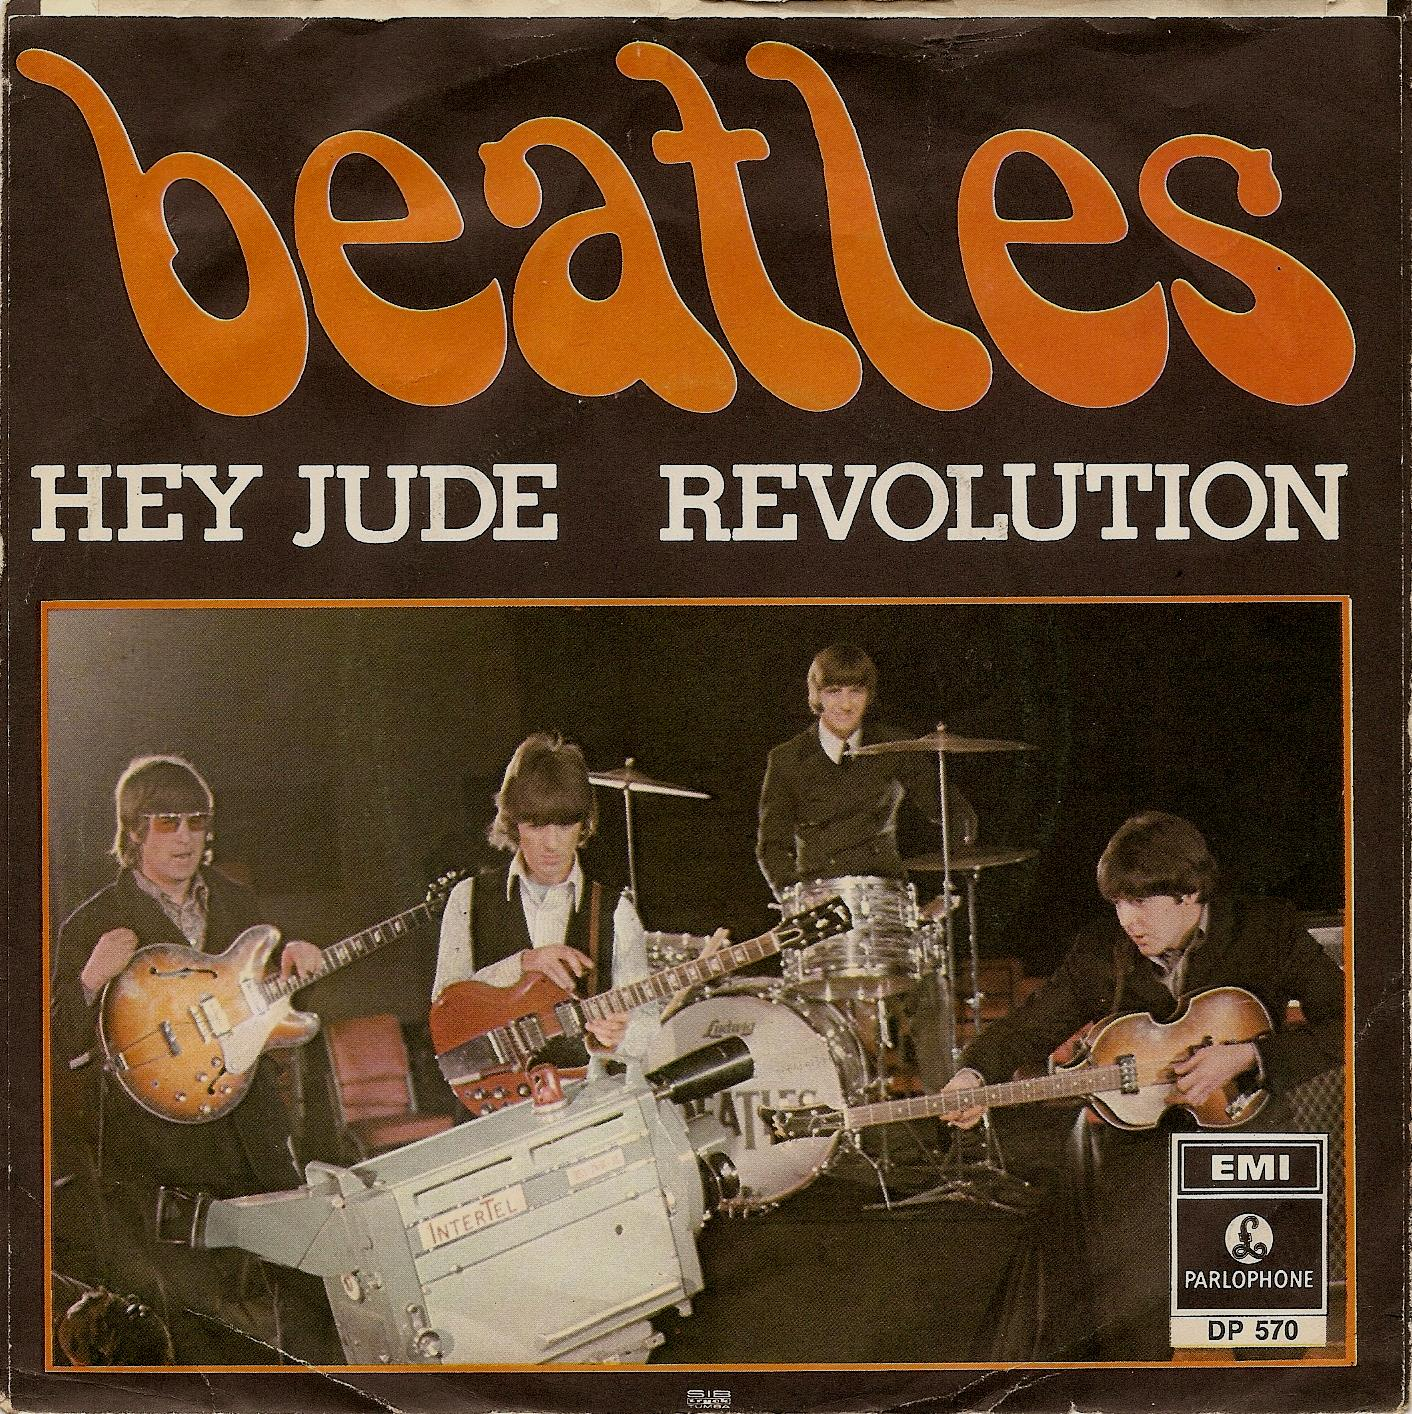 The Beatles - Hey Jude/Beatles Again 1970 LP with rare sticker